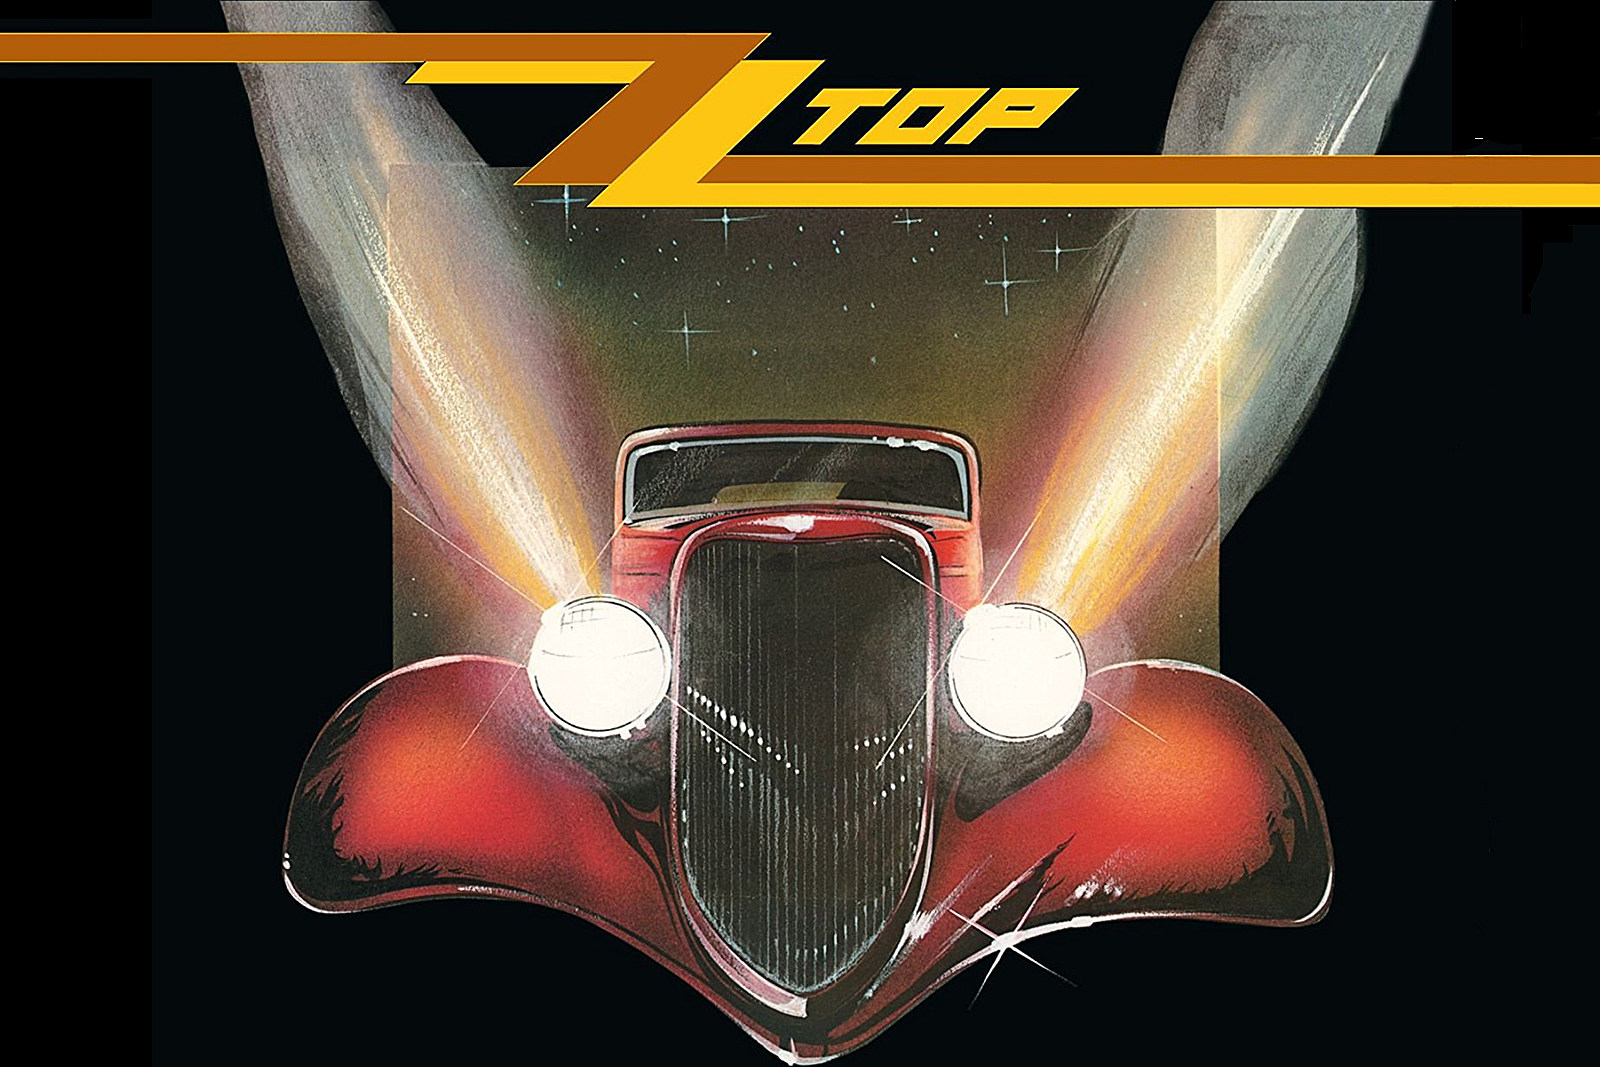 Is 'Eliminator' ZZ Top's Best Album? Our Writers Answer Five Big Questions